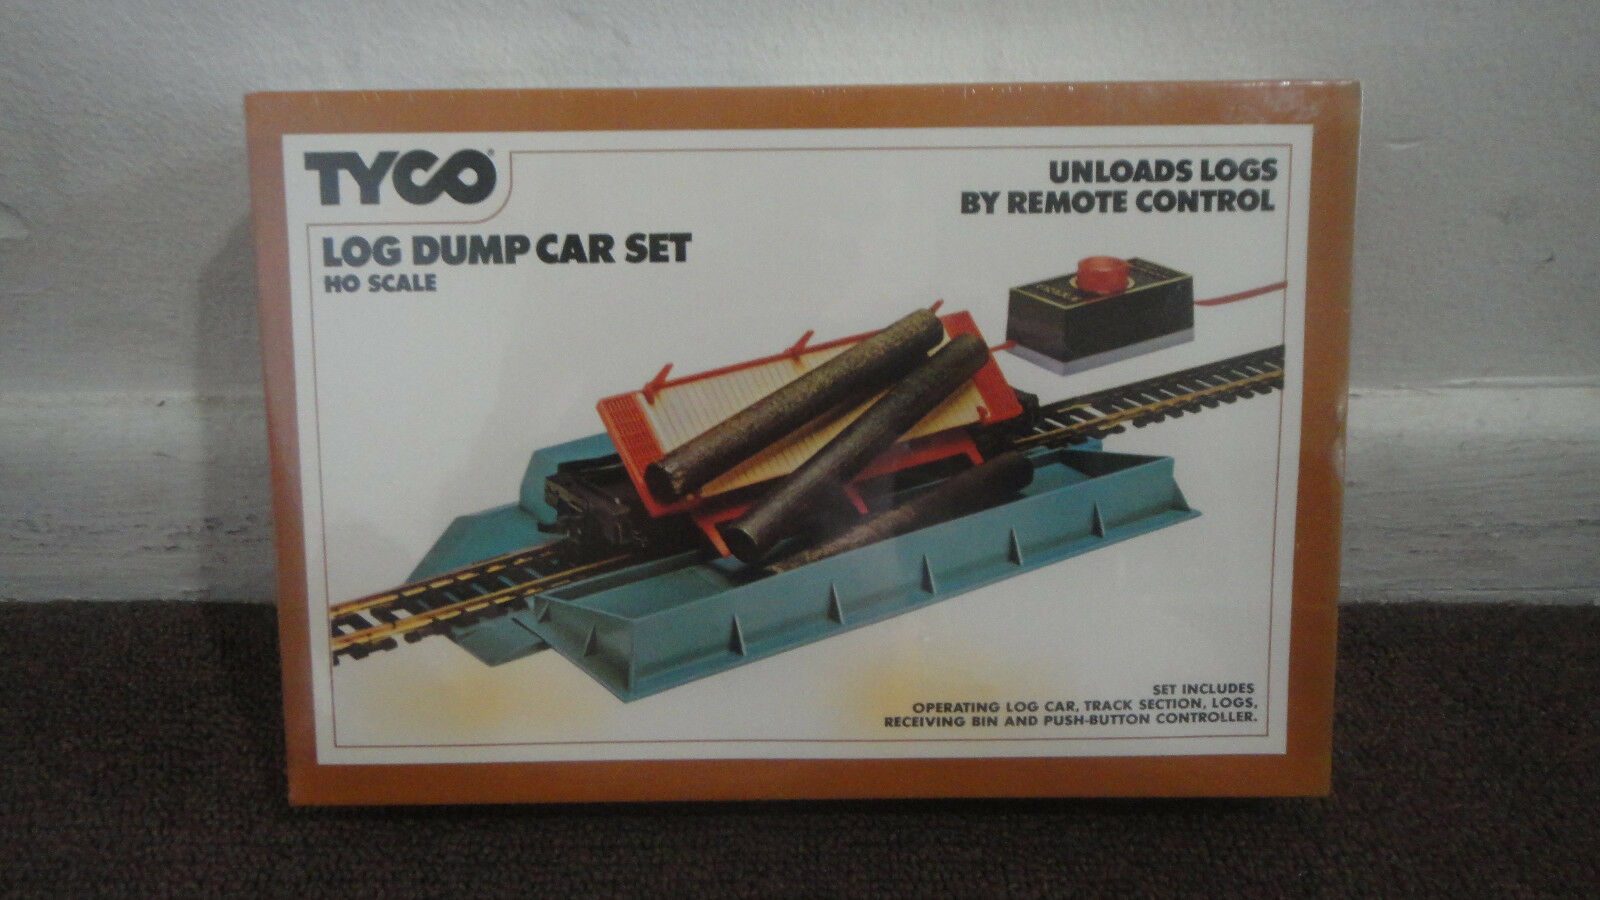 TYCO LOG DUMP CAR SET REMOTE CONTROL NEW, SEALED. 1975. HO SCALE. LOOK